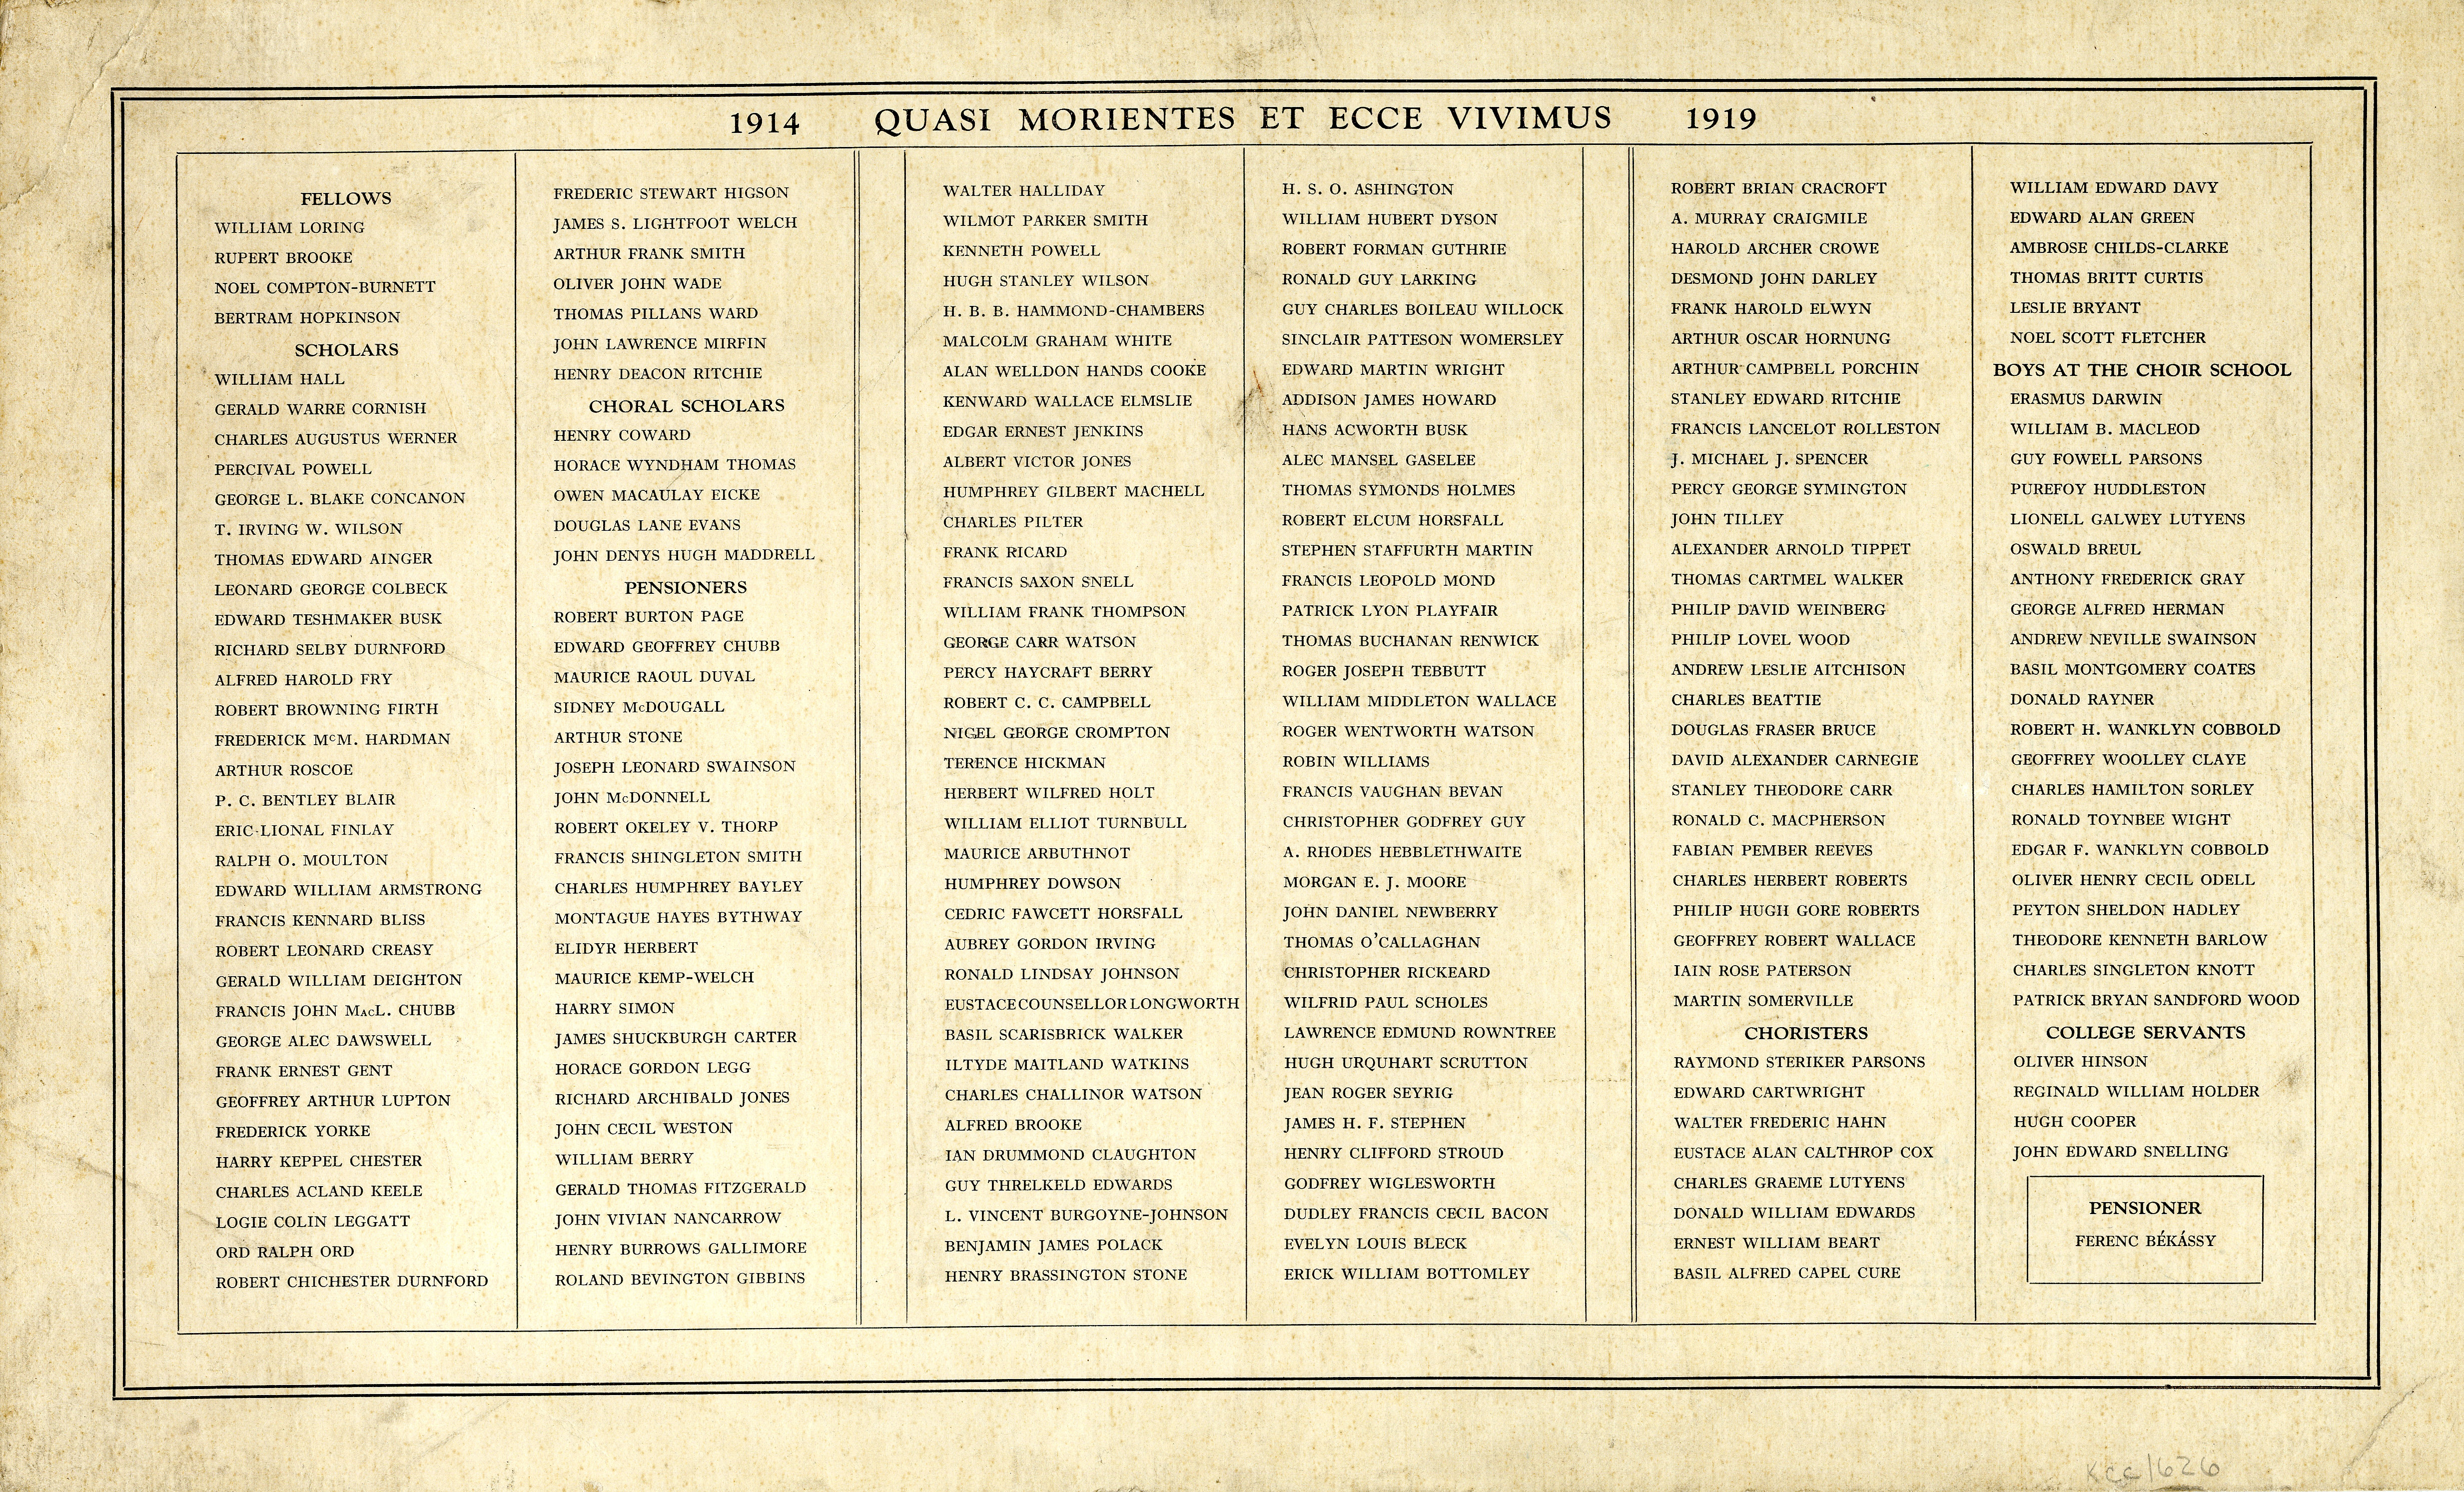 List of names inscribed in the Memorial Chapel (KCC/626)